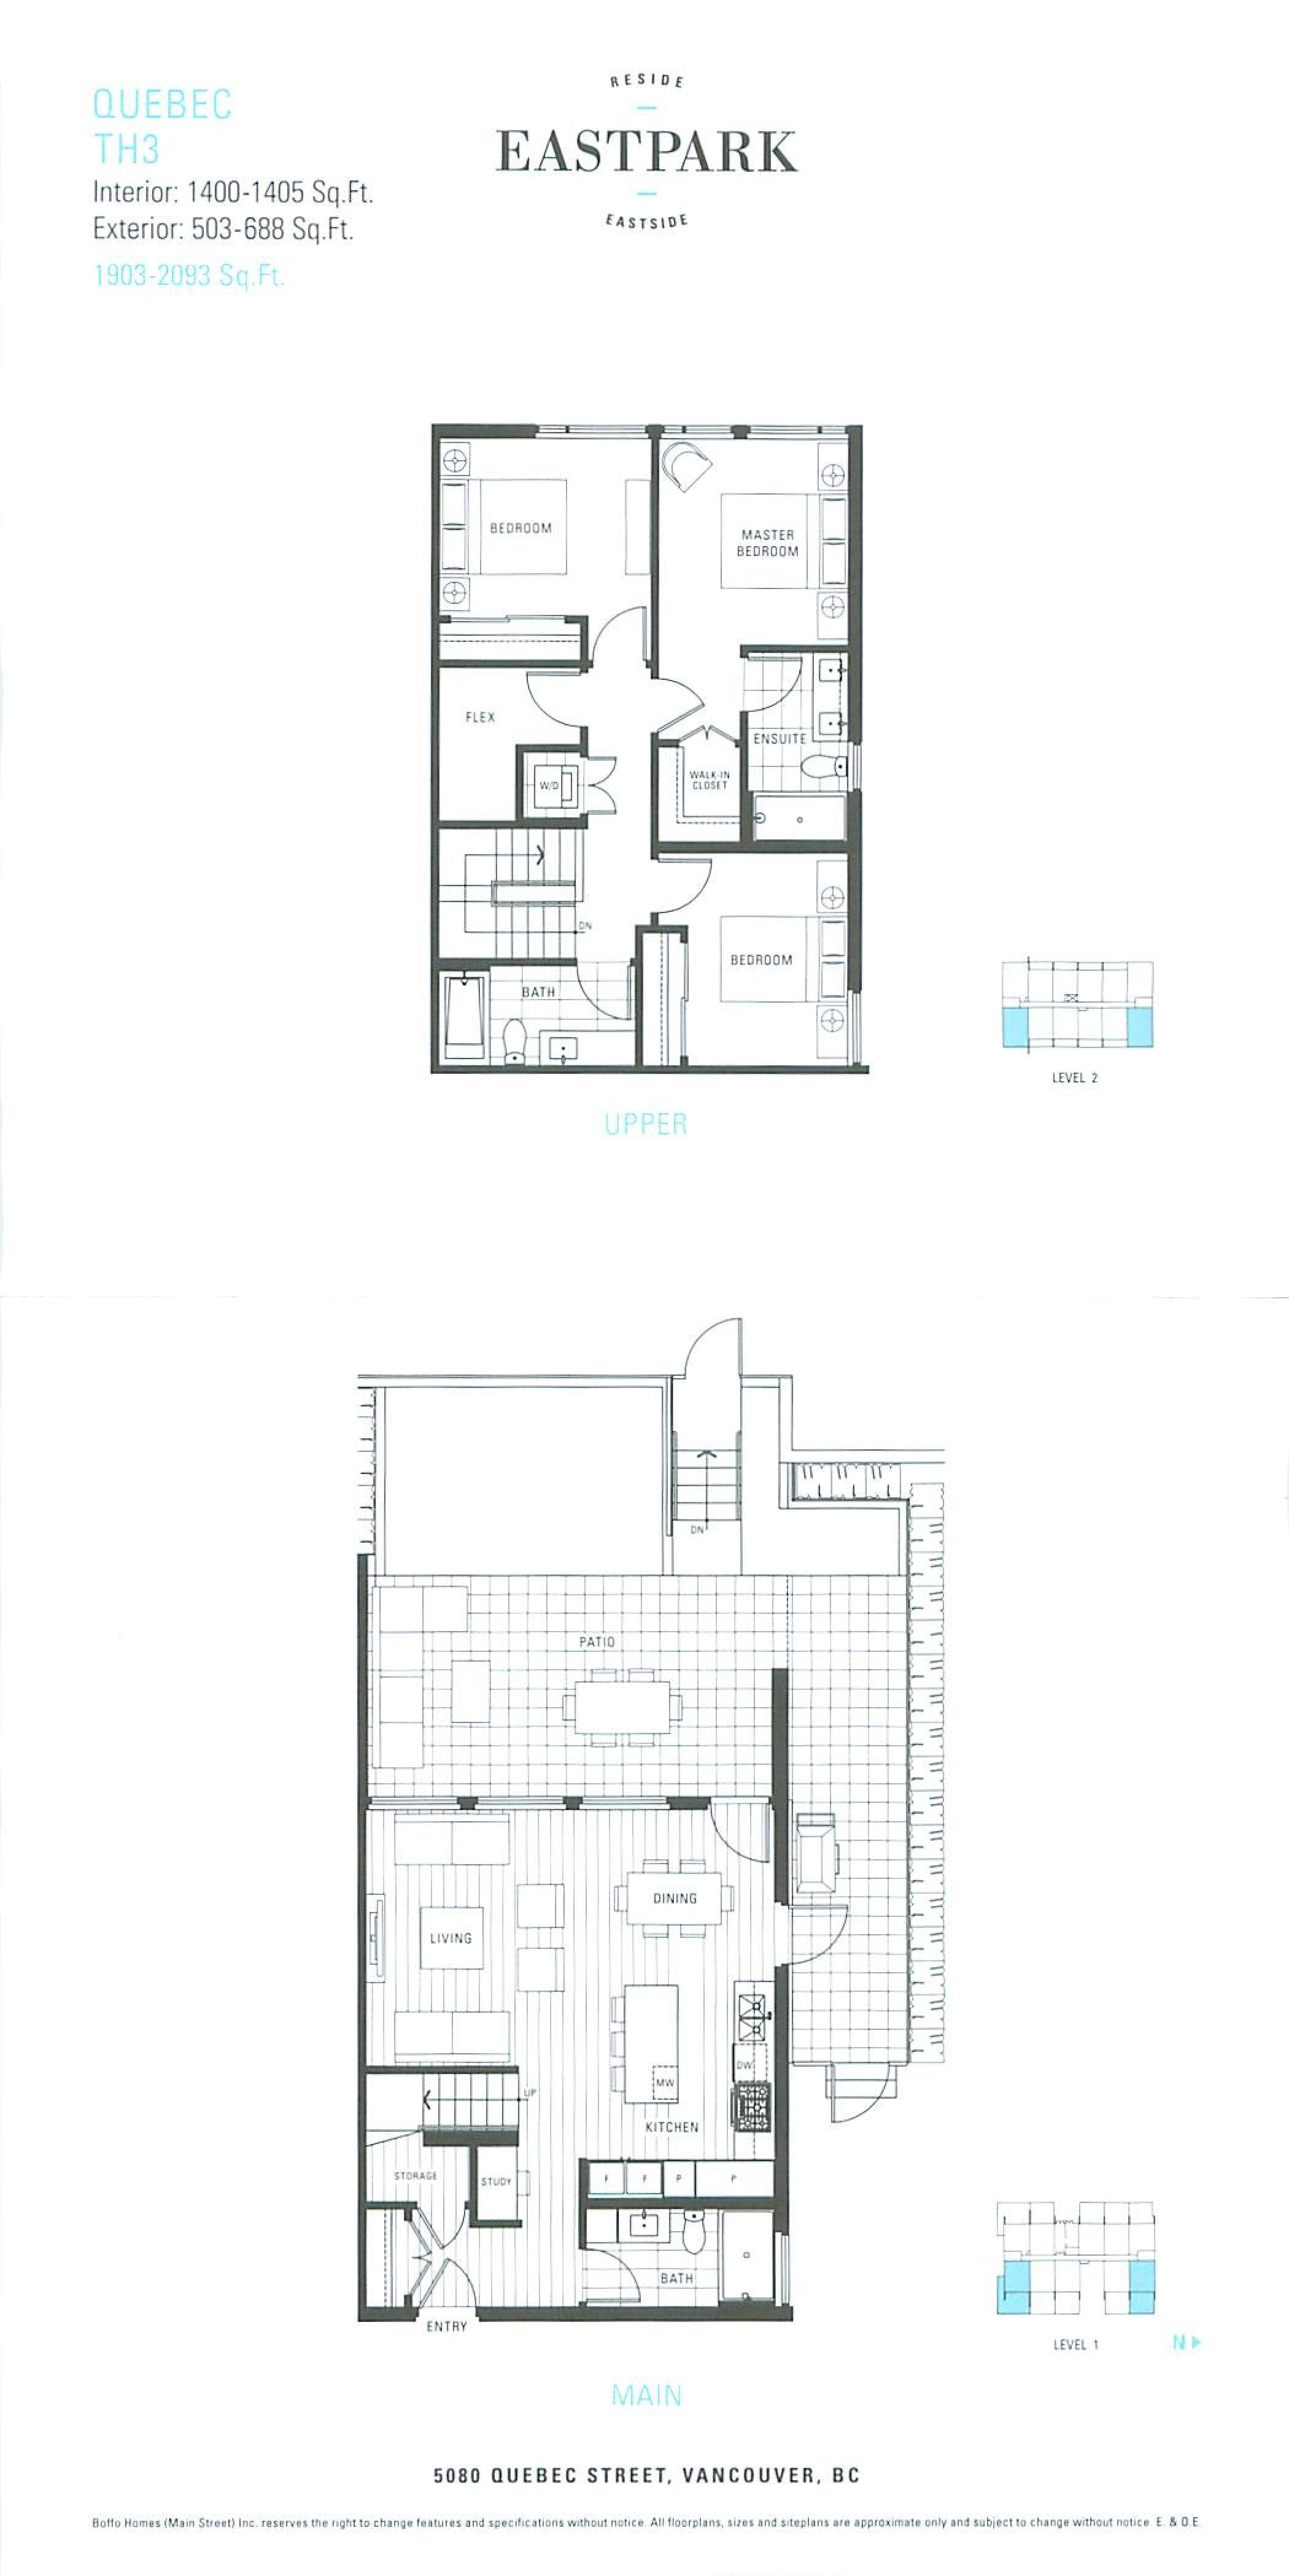 EastPark Quebec Larger Floor Plans Mike Stewart-page-009